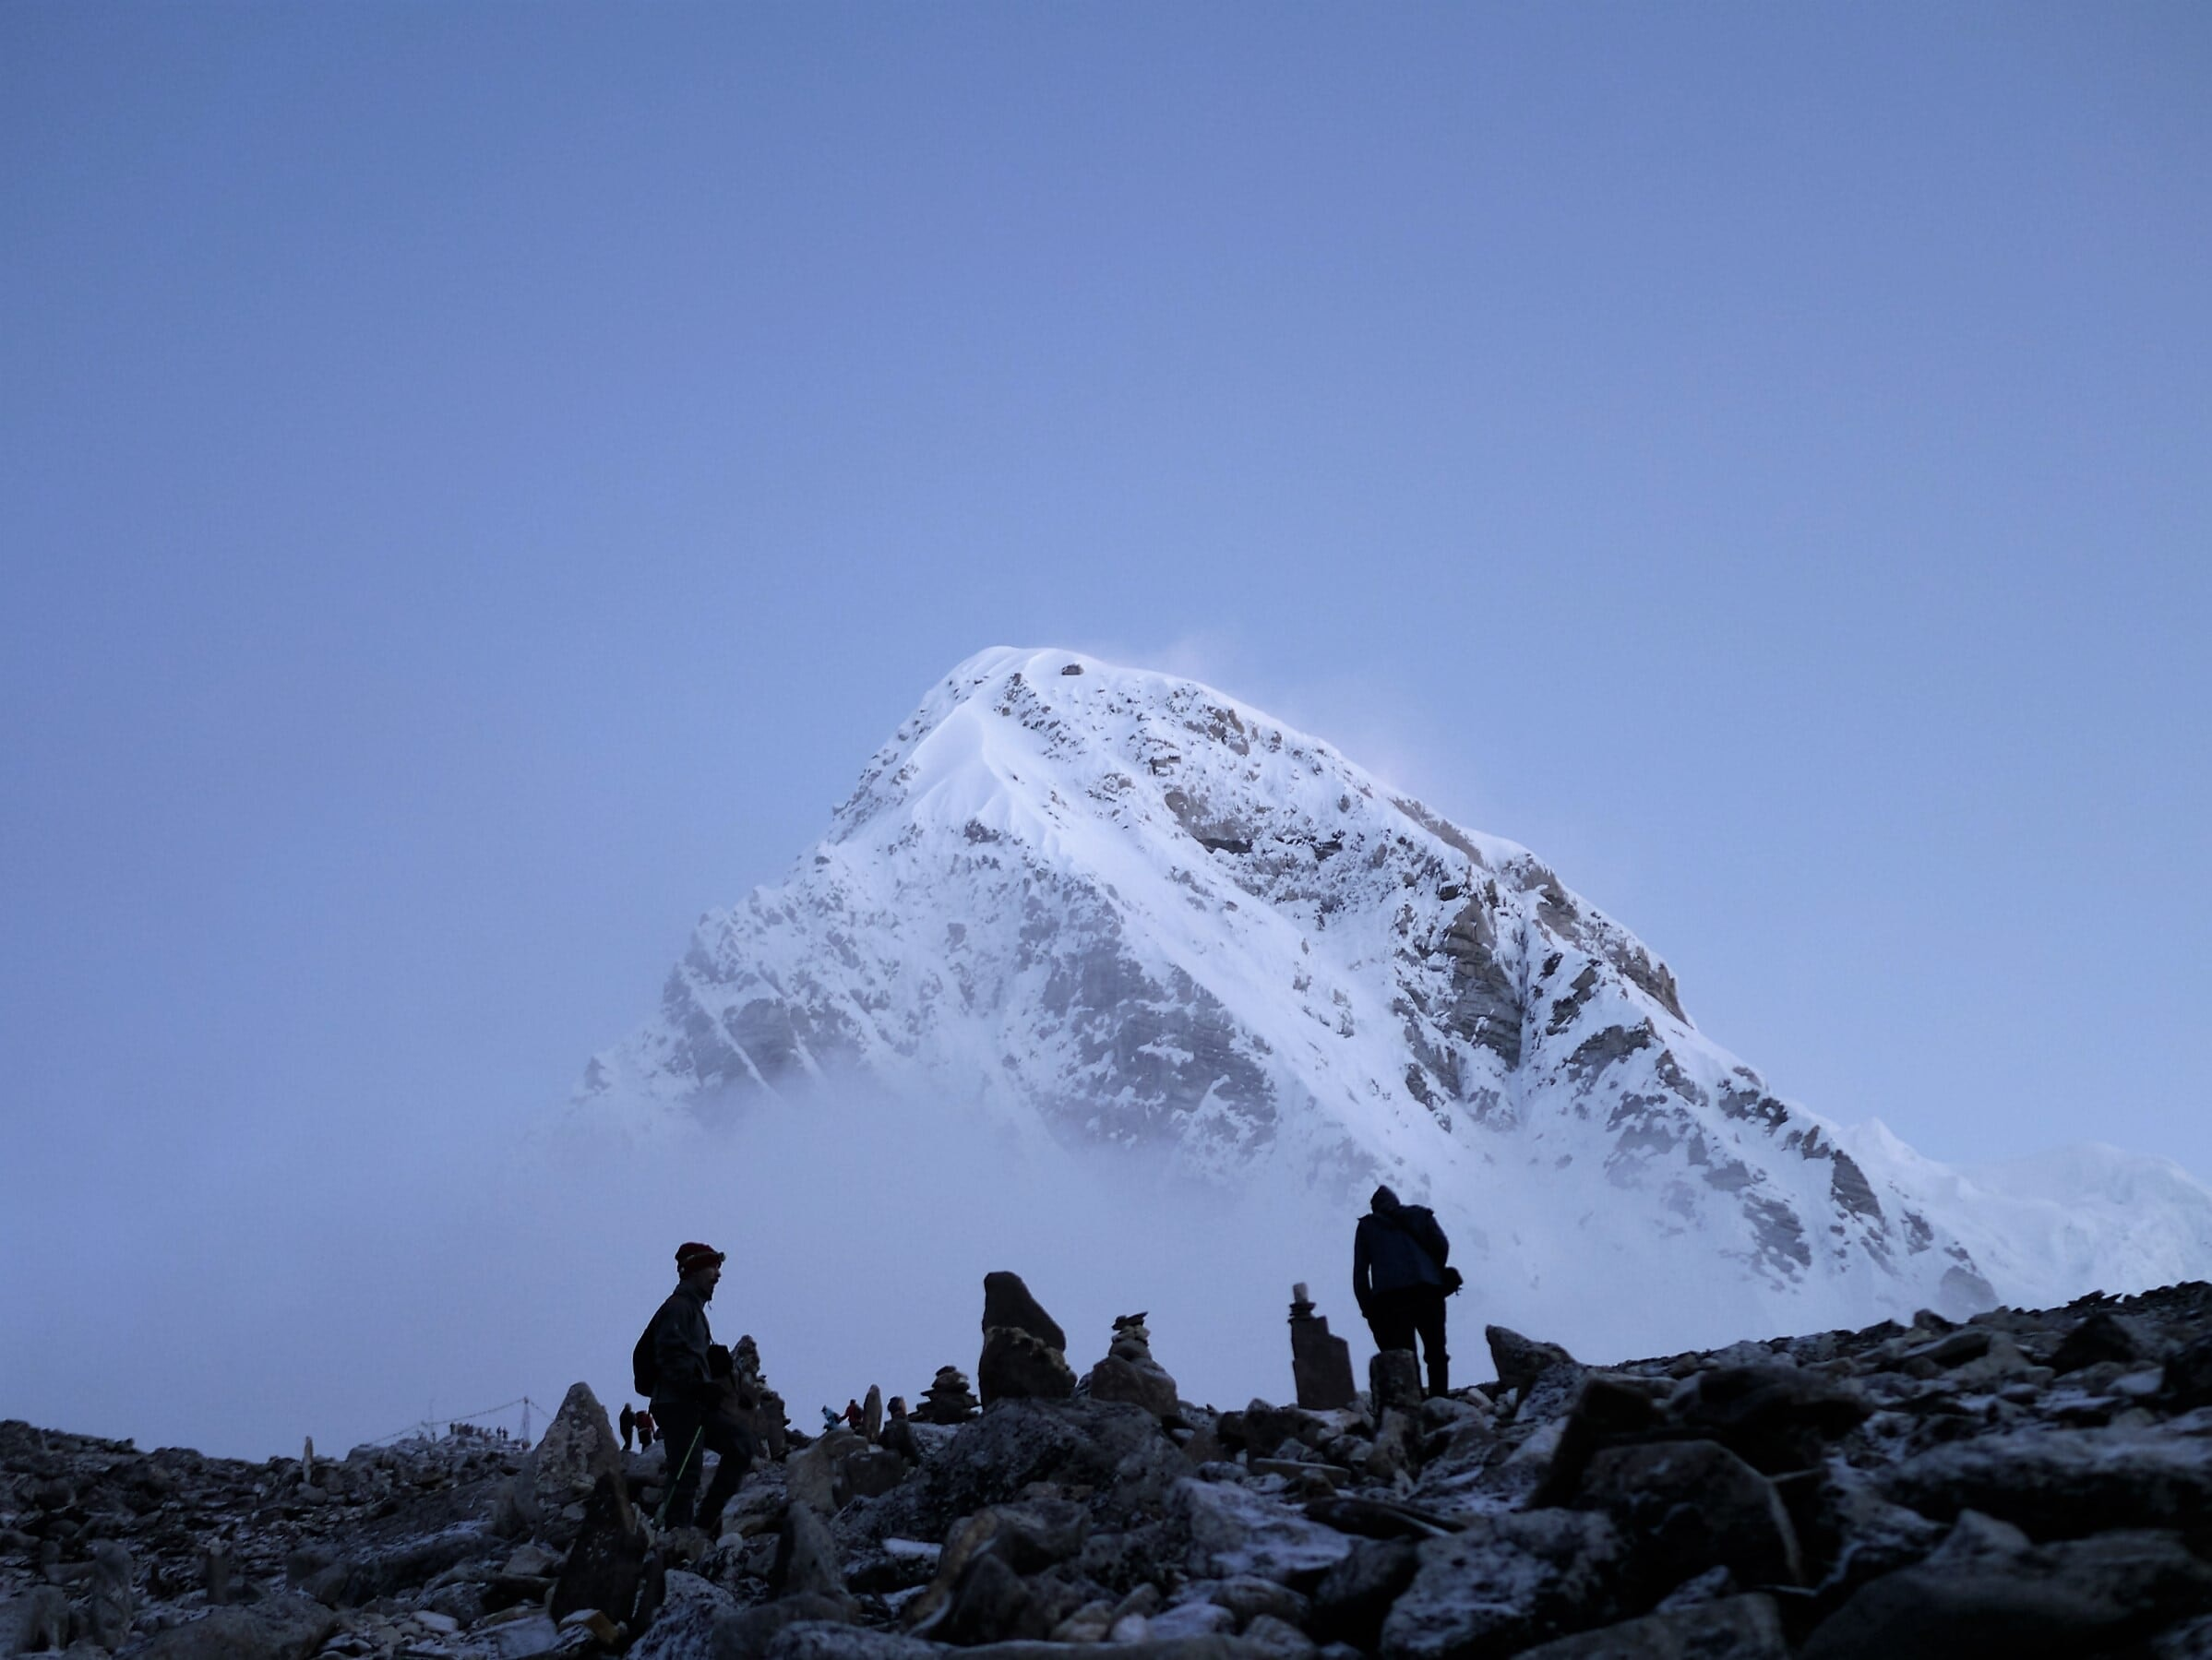 mountaineers near snow-covered mountain